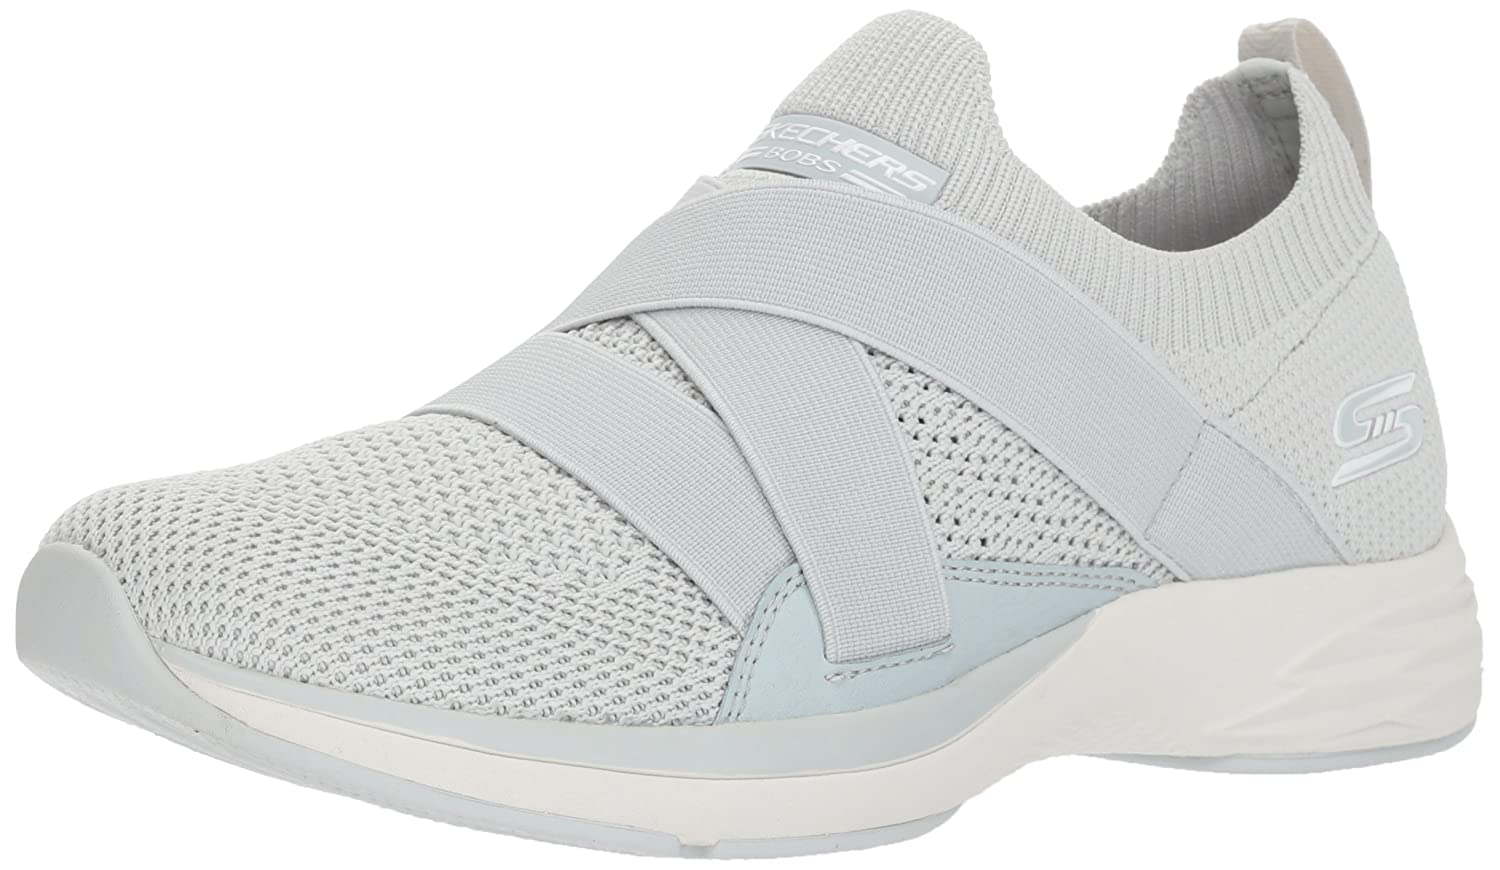 Skechers BOBS from Women's Bobs Clique Sneaker B078C948WR 5 M US|Ltgy